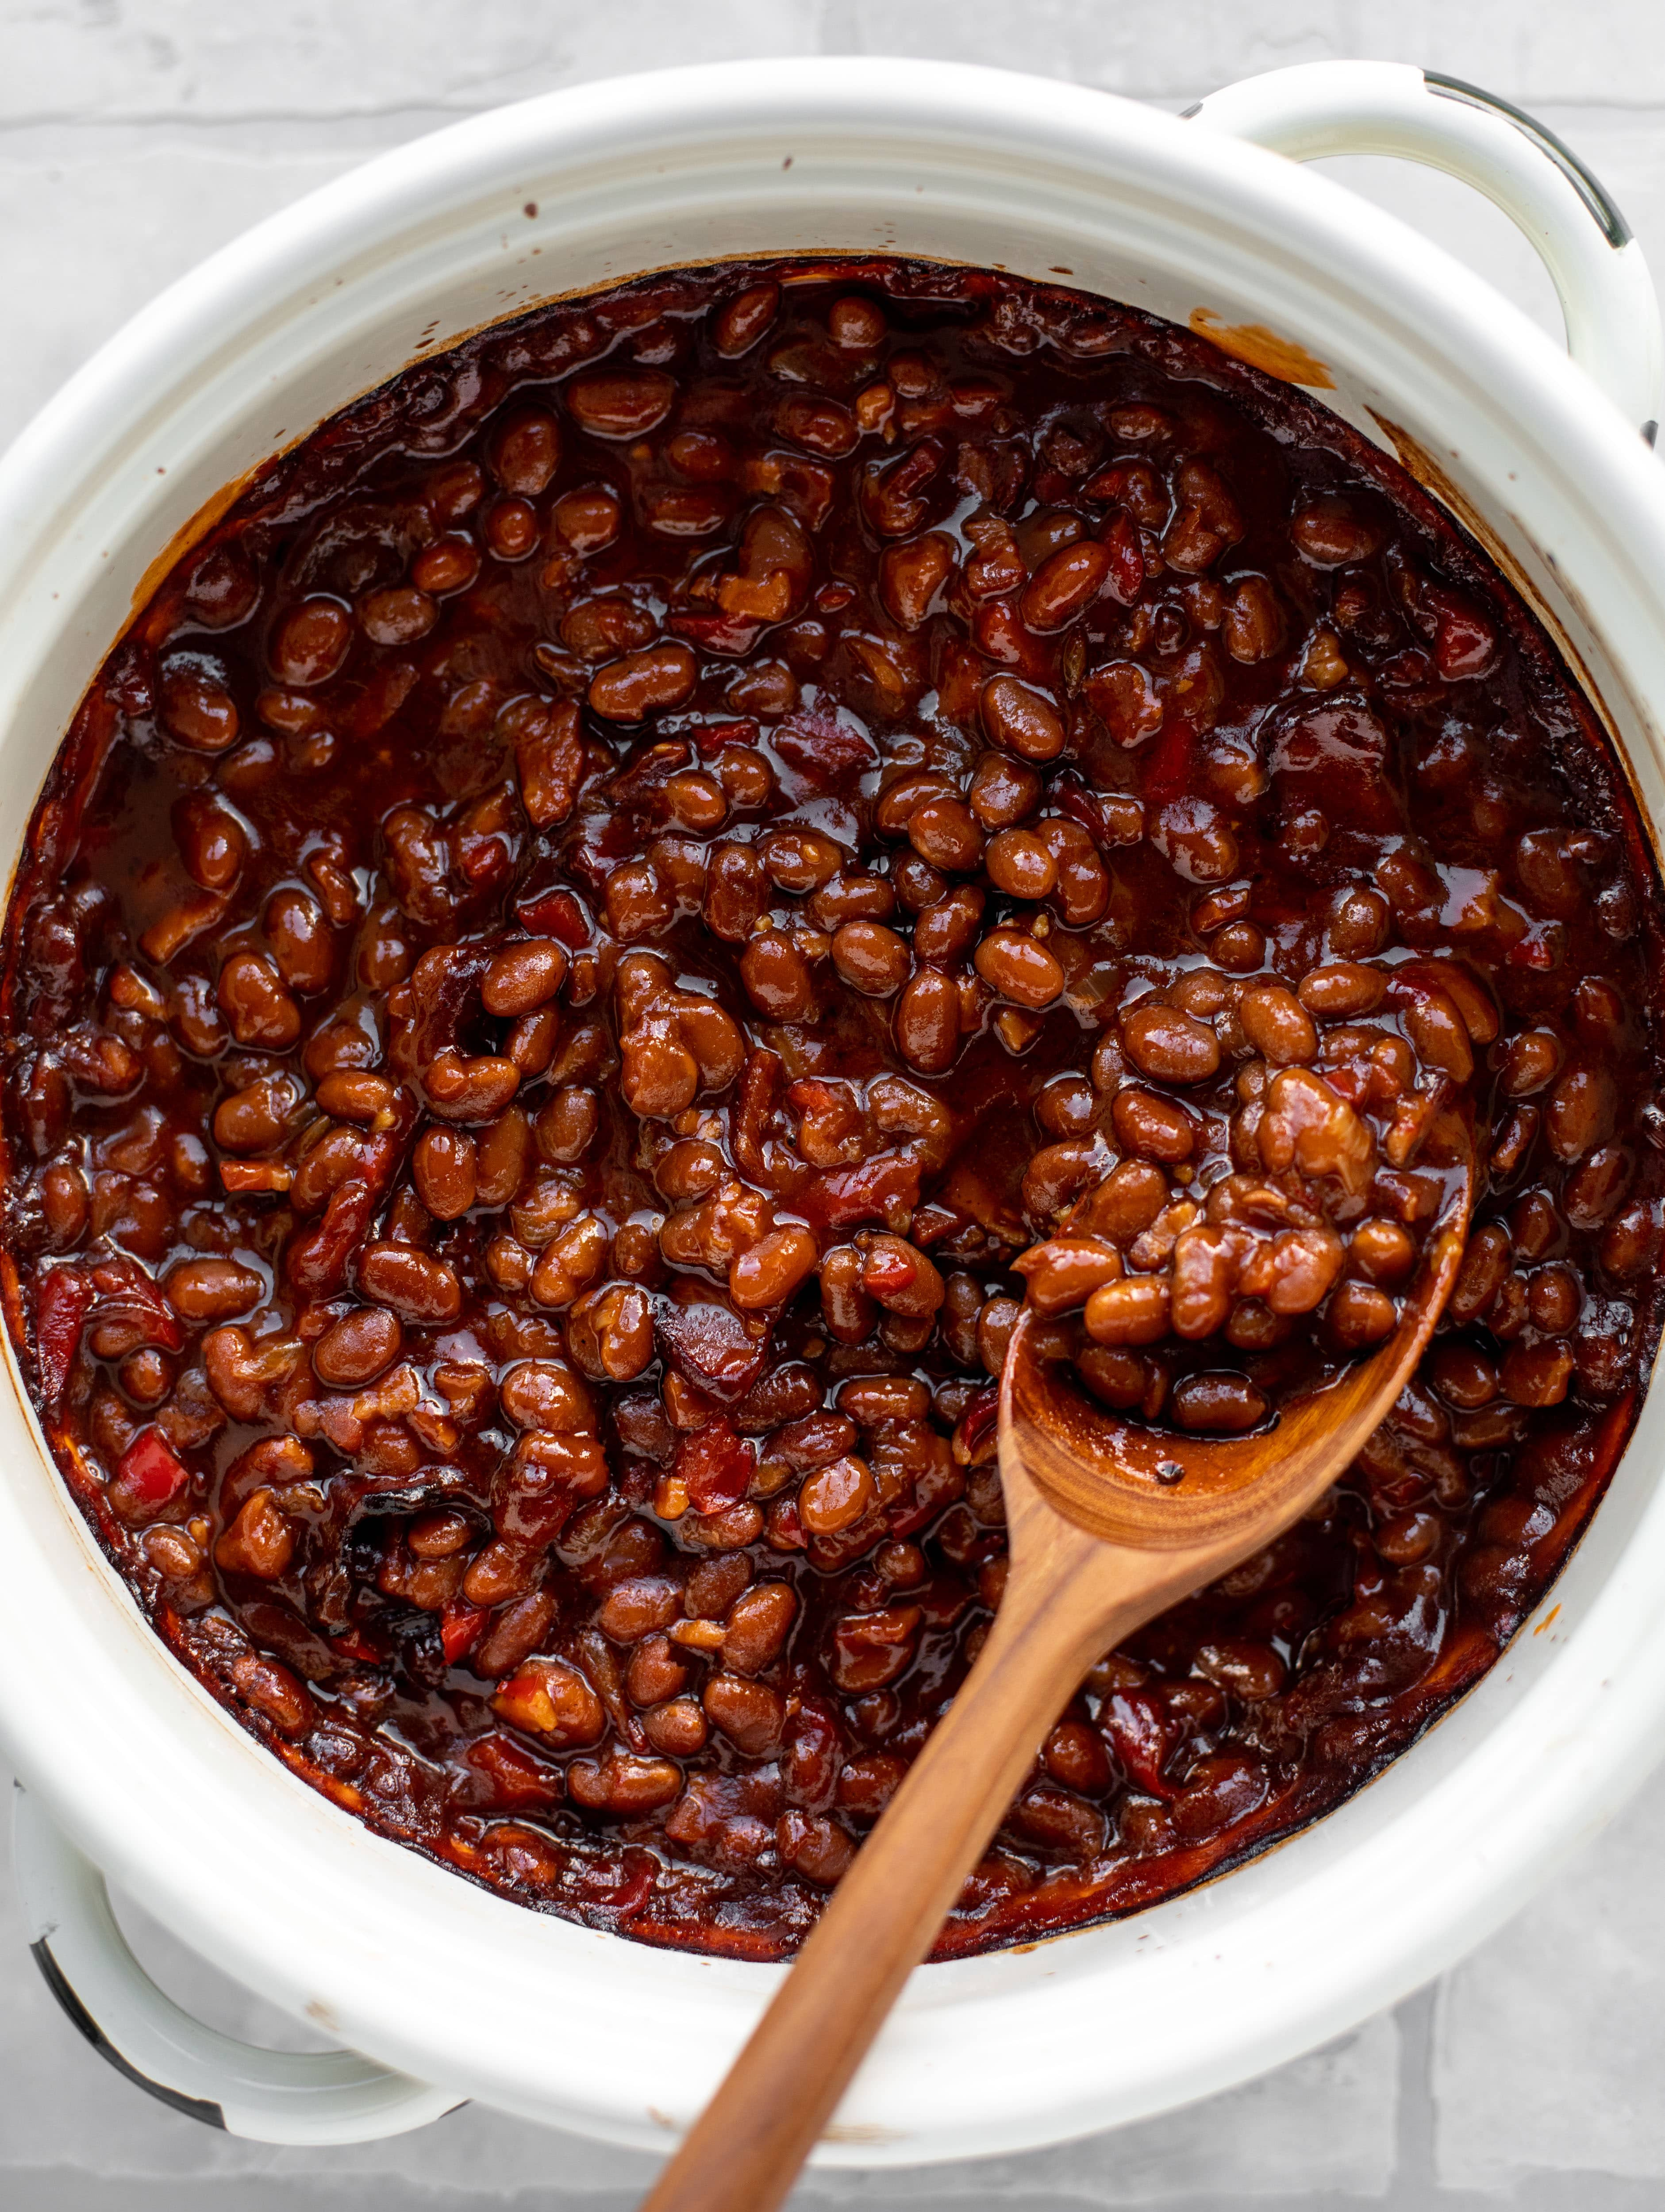 Baked Beans Recipe Our Favorite Baked Beans Recipe